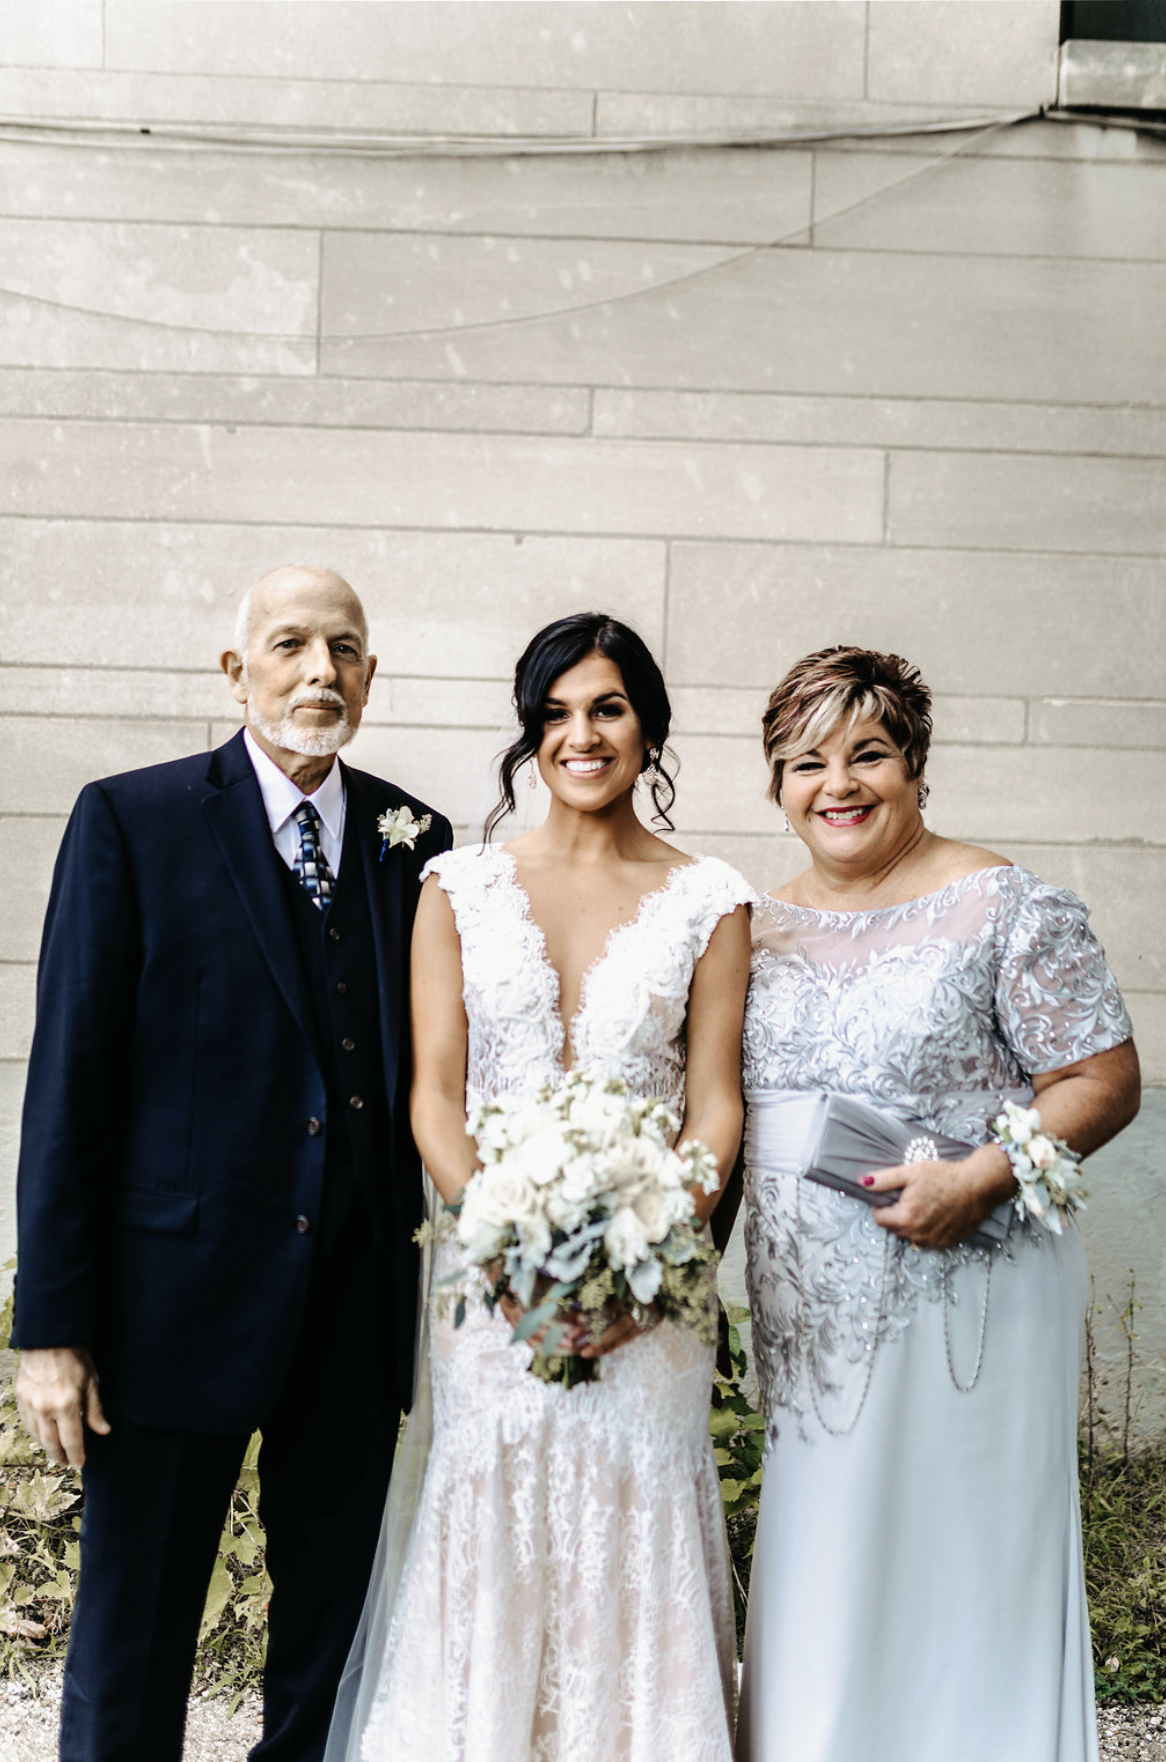 Valerie-and-TJ-McConnell-Wedding-Coordination-by-Cassandra-Clair-Event-Prep-Pittsburgh-Wedding-24.png